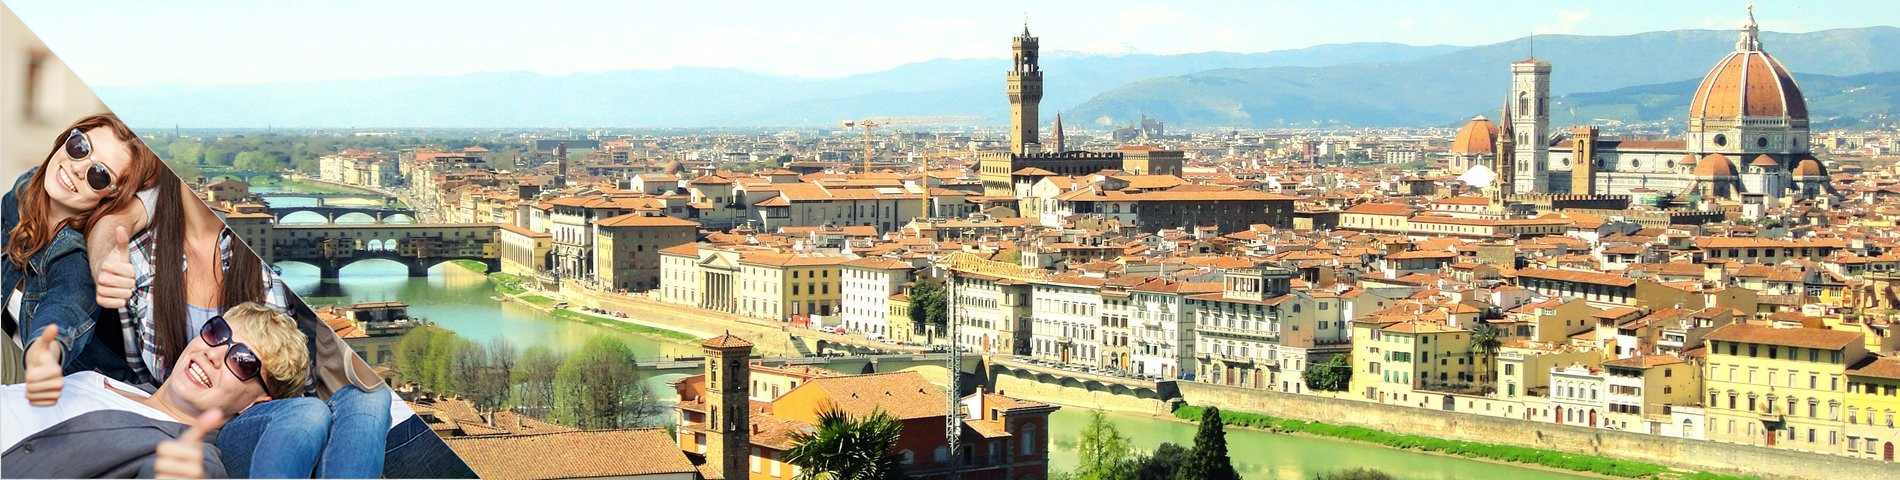 Florence - Voyages scolaires / Groupes